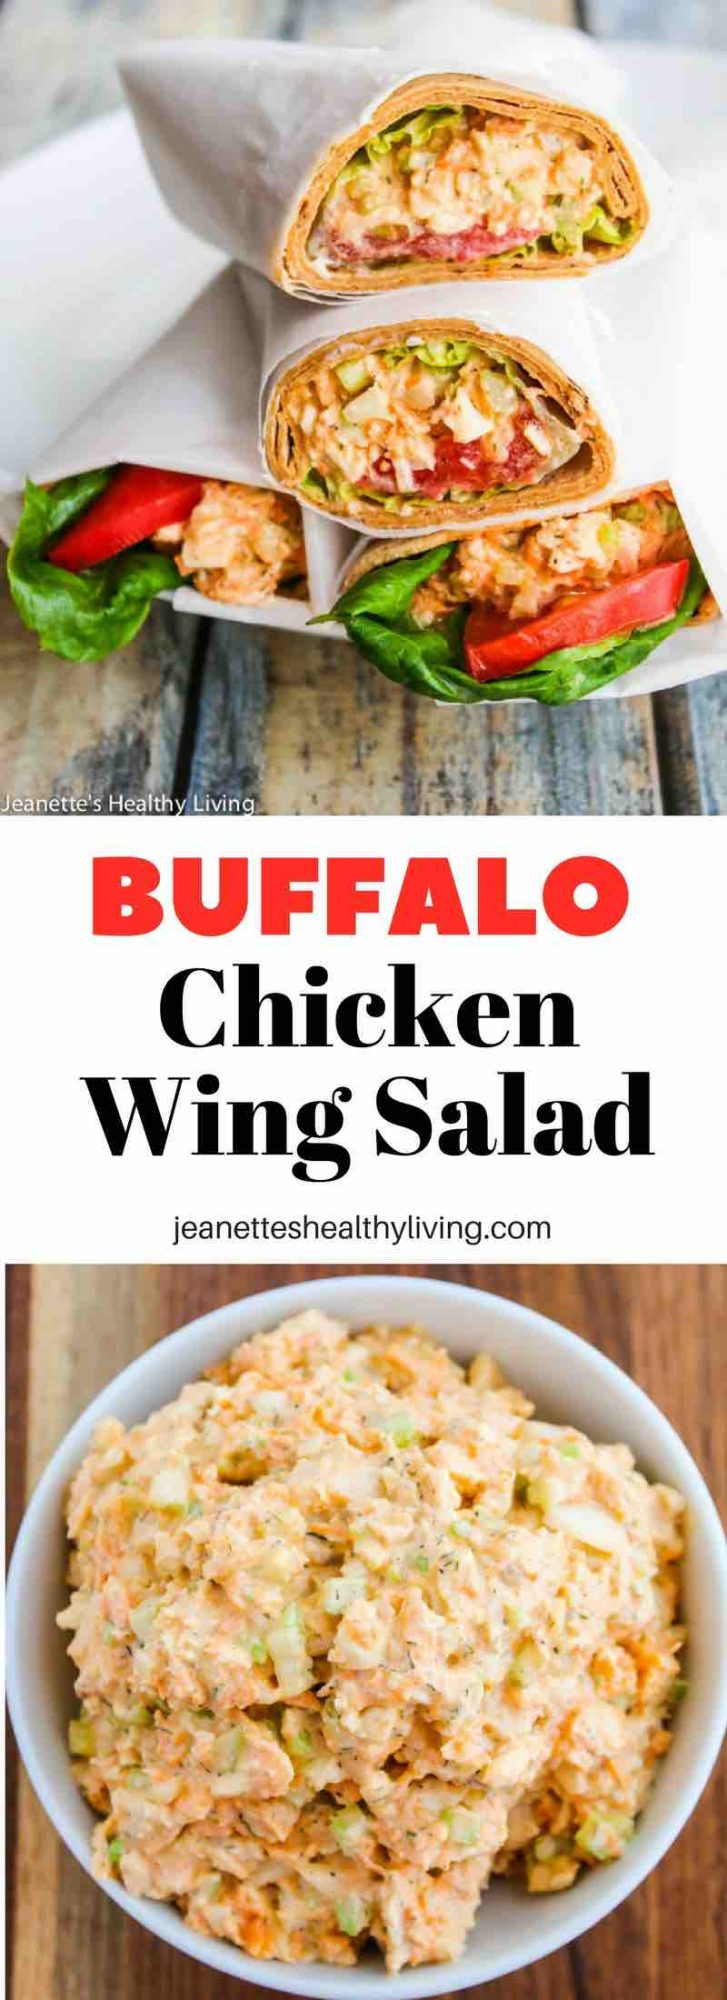 Buffalo Chicken WIng Salad - all the flavors of everyone's favorite Buffalo chicken wings in a wrap sandwich